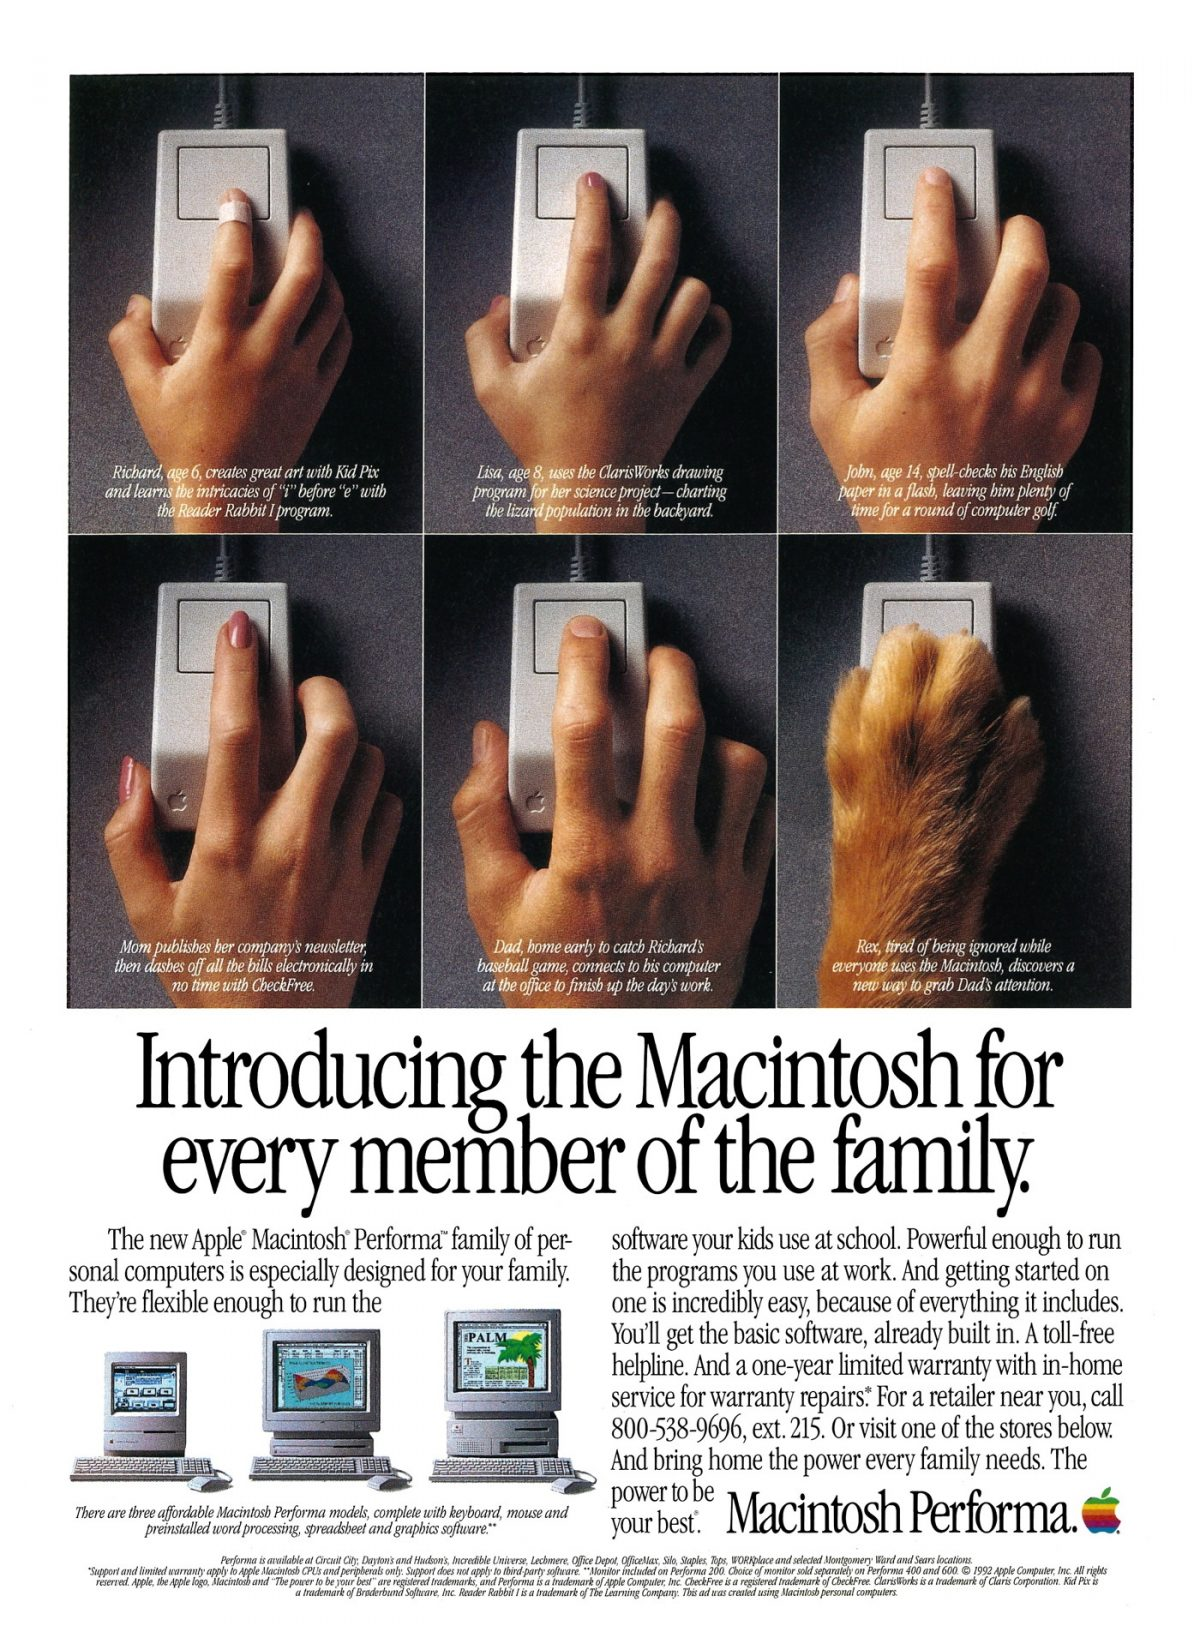 Apple 1992 Ad : Introducing the Macintosh for every member of the family (Performa)